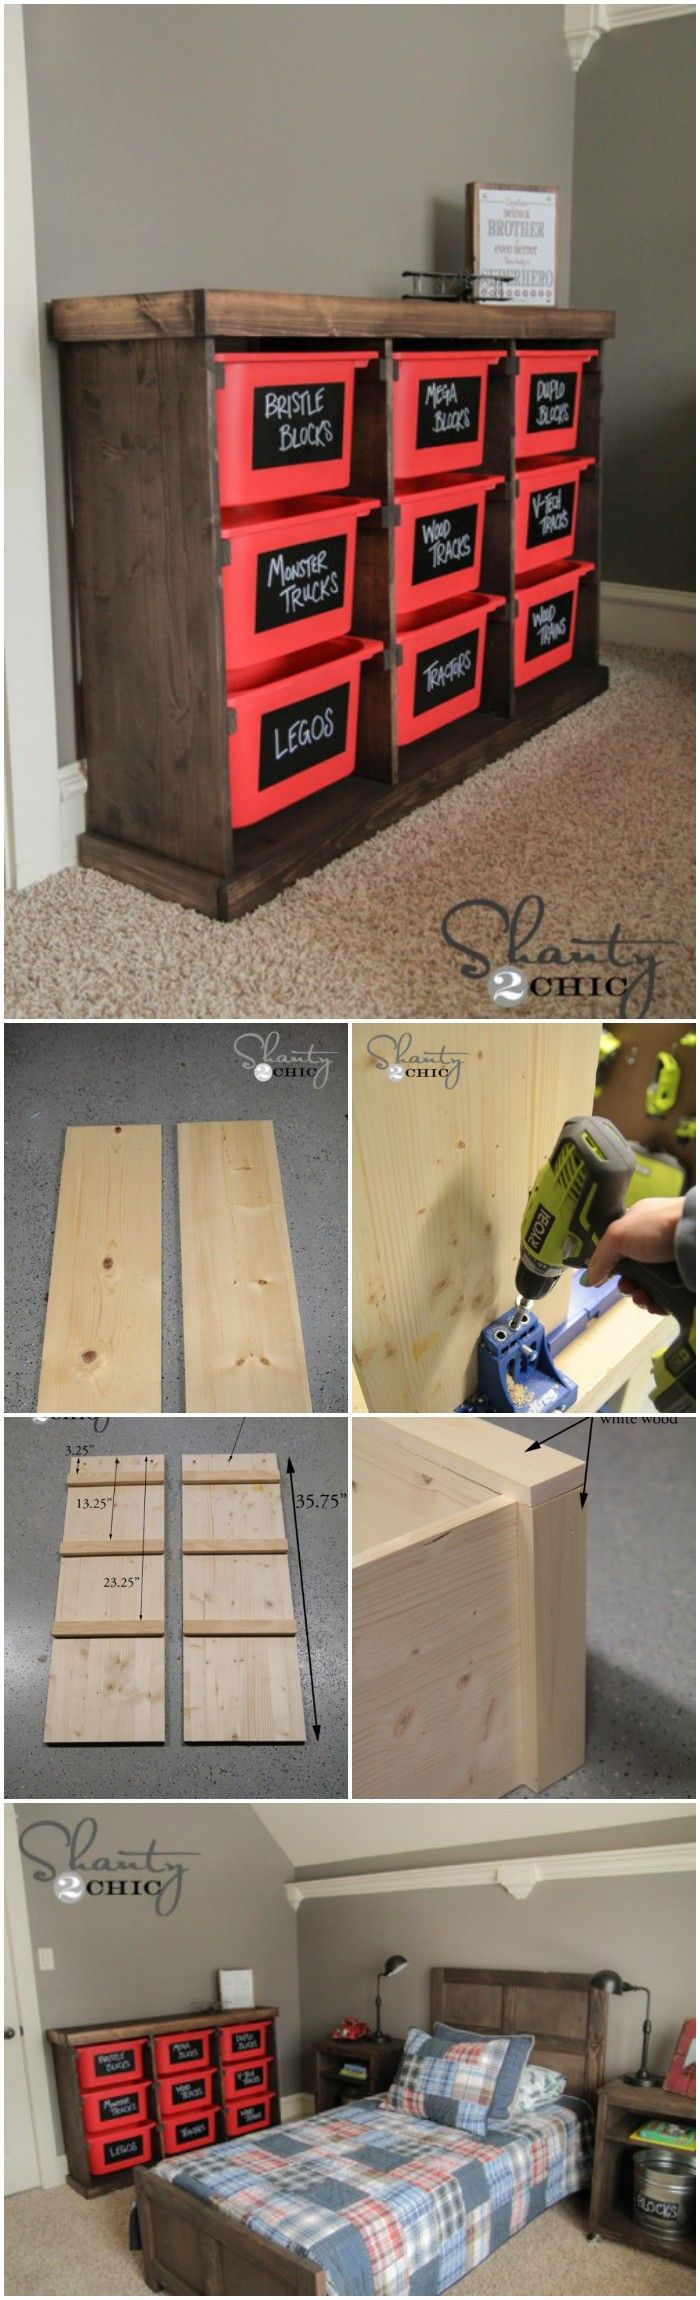 cheap DIY projects for home decoration.That will prove very beneficial to build up a well-decorated home.Wood and Plastic Baskets Storage Rack